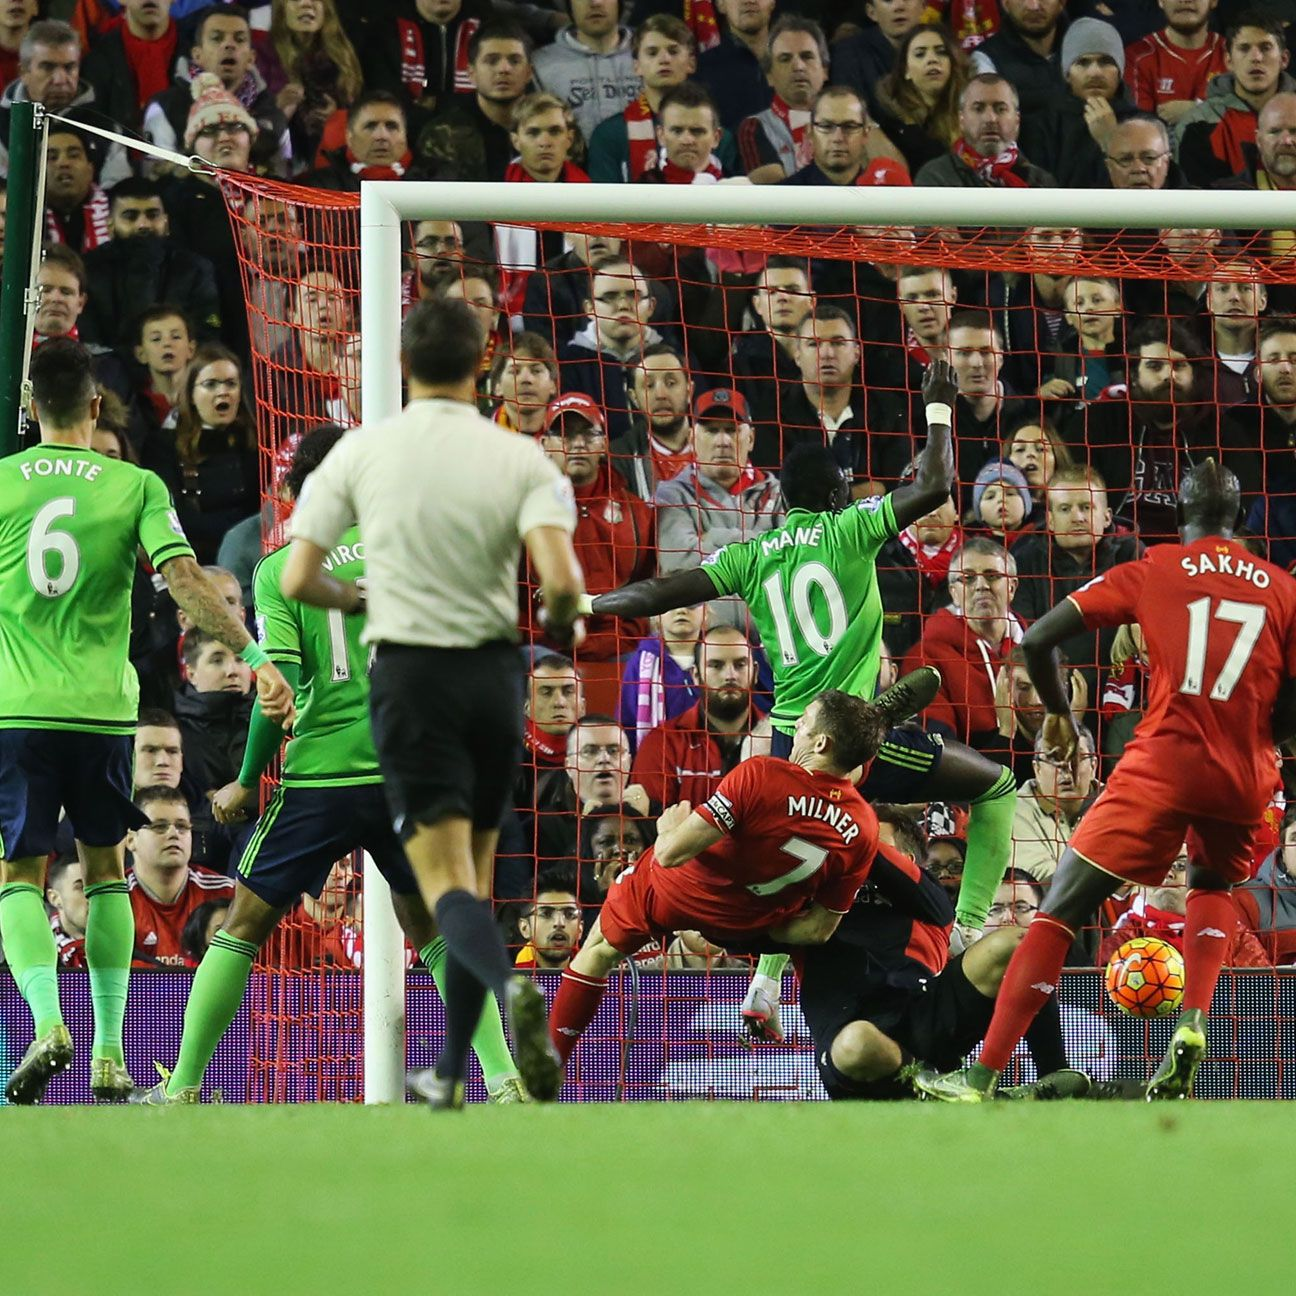 Sadio Mane struck late to earn Southampton a precious point at Anfield.